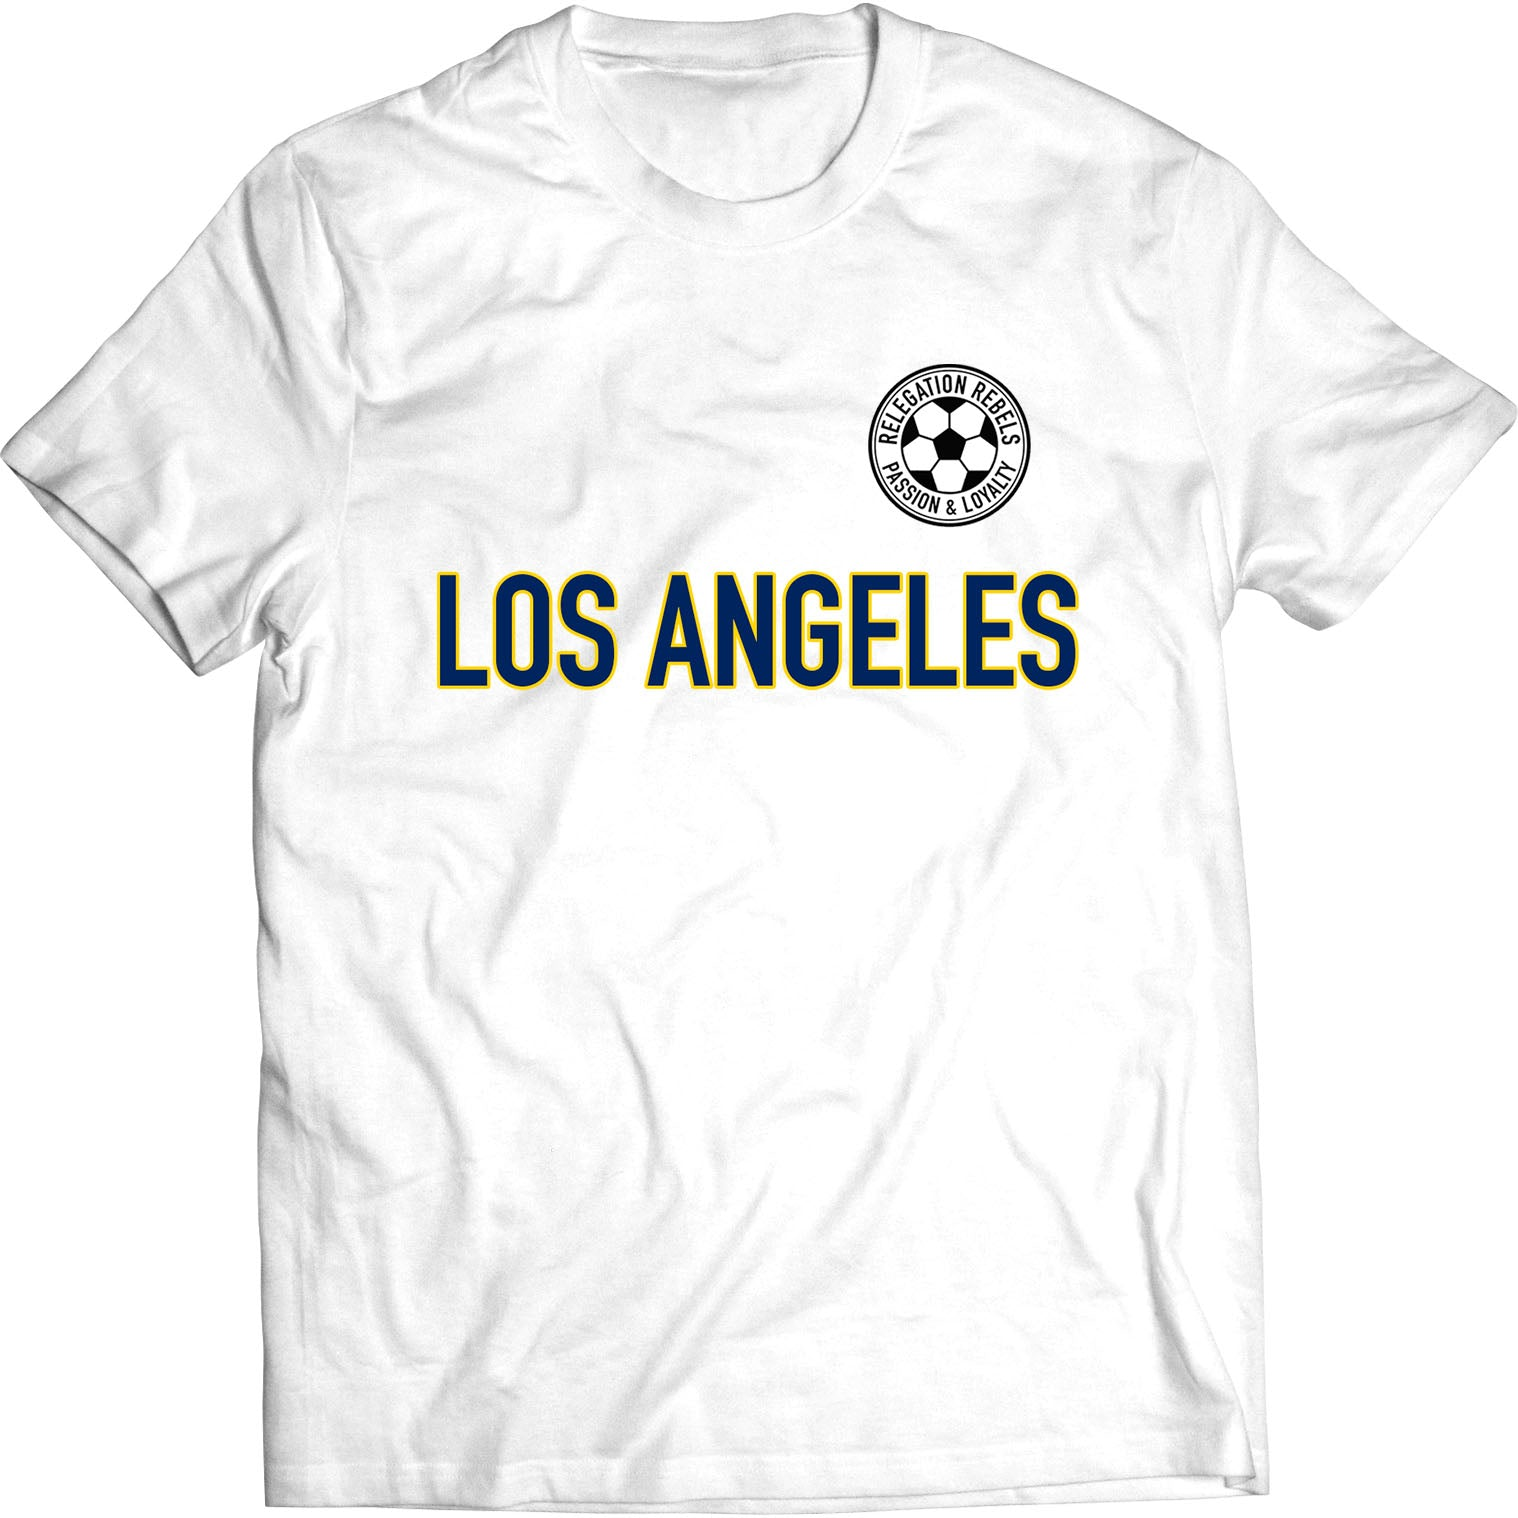 Los Angeles - Blue and Gold Tee - Relegation Rebels